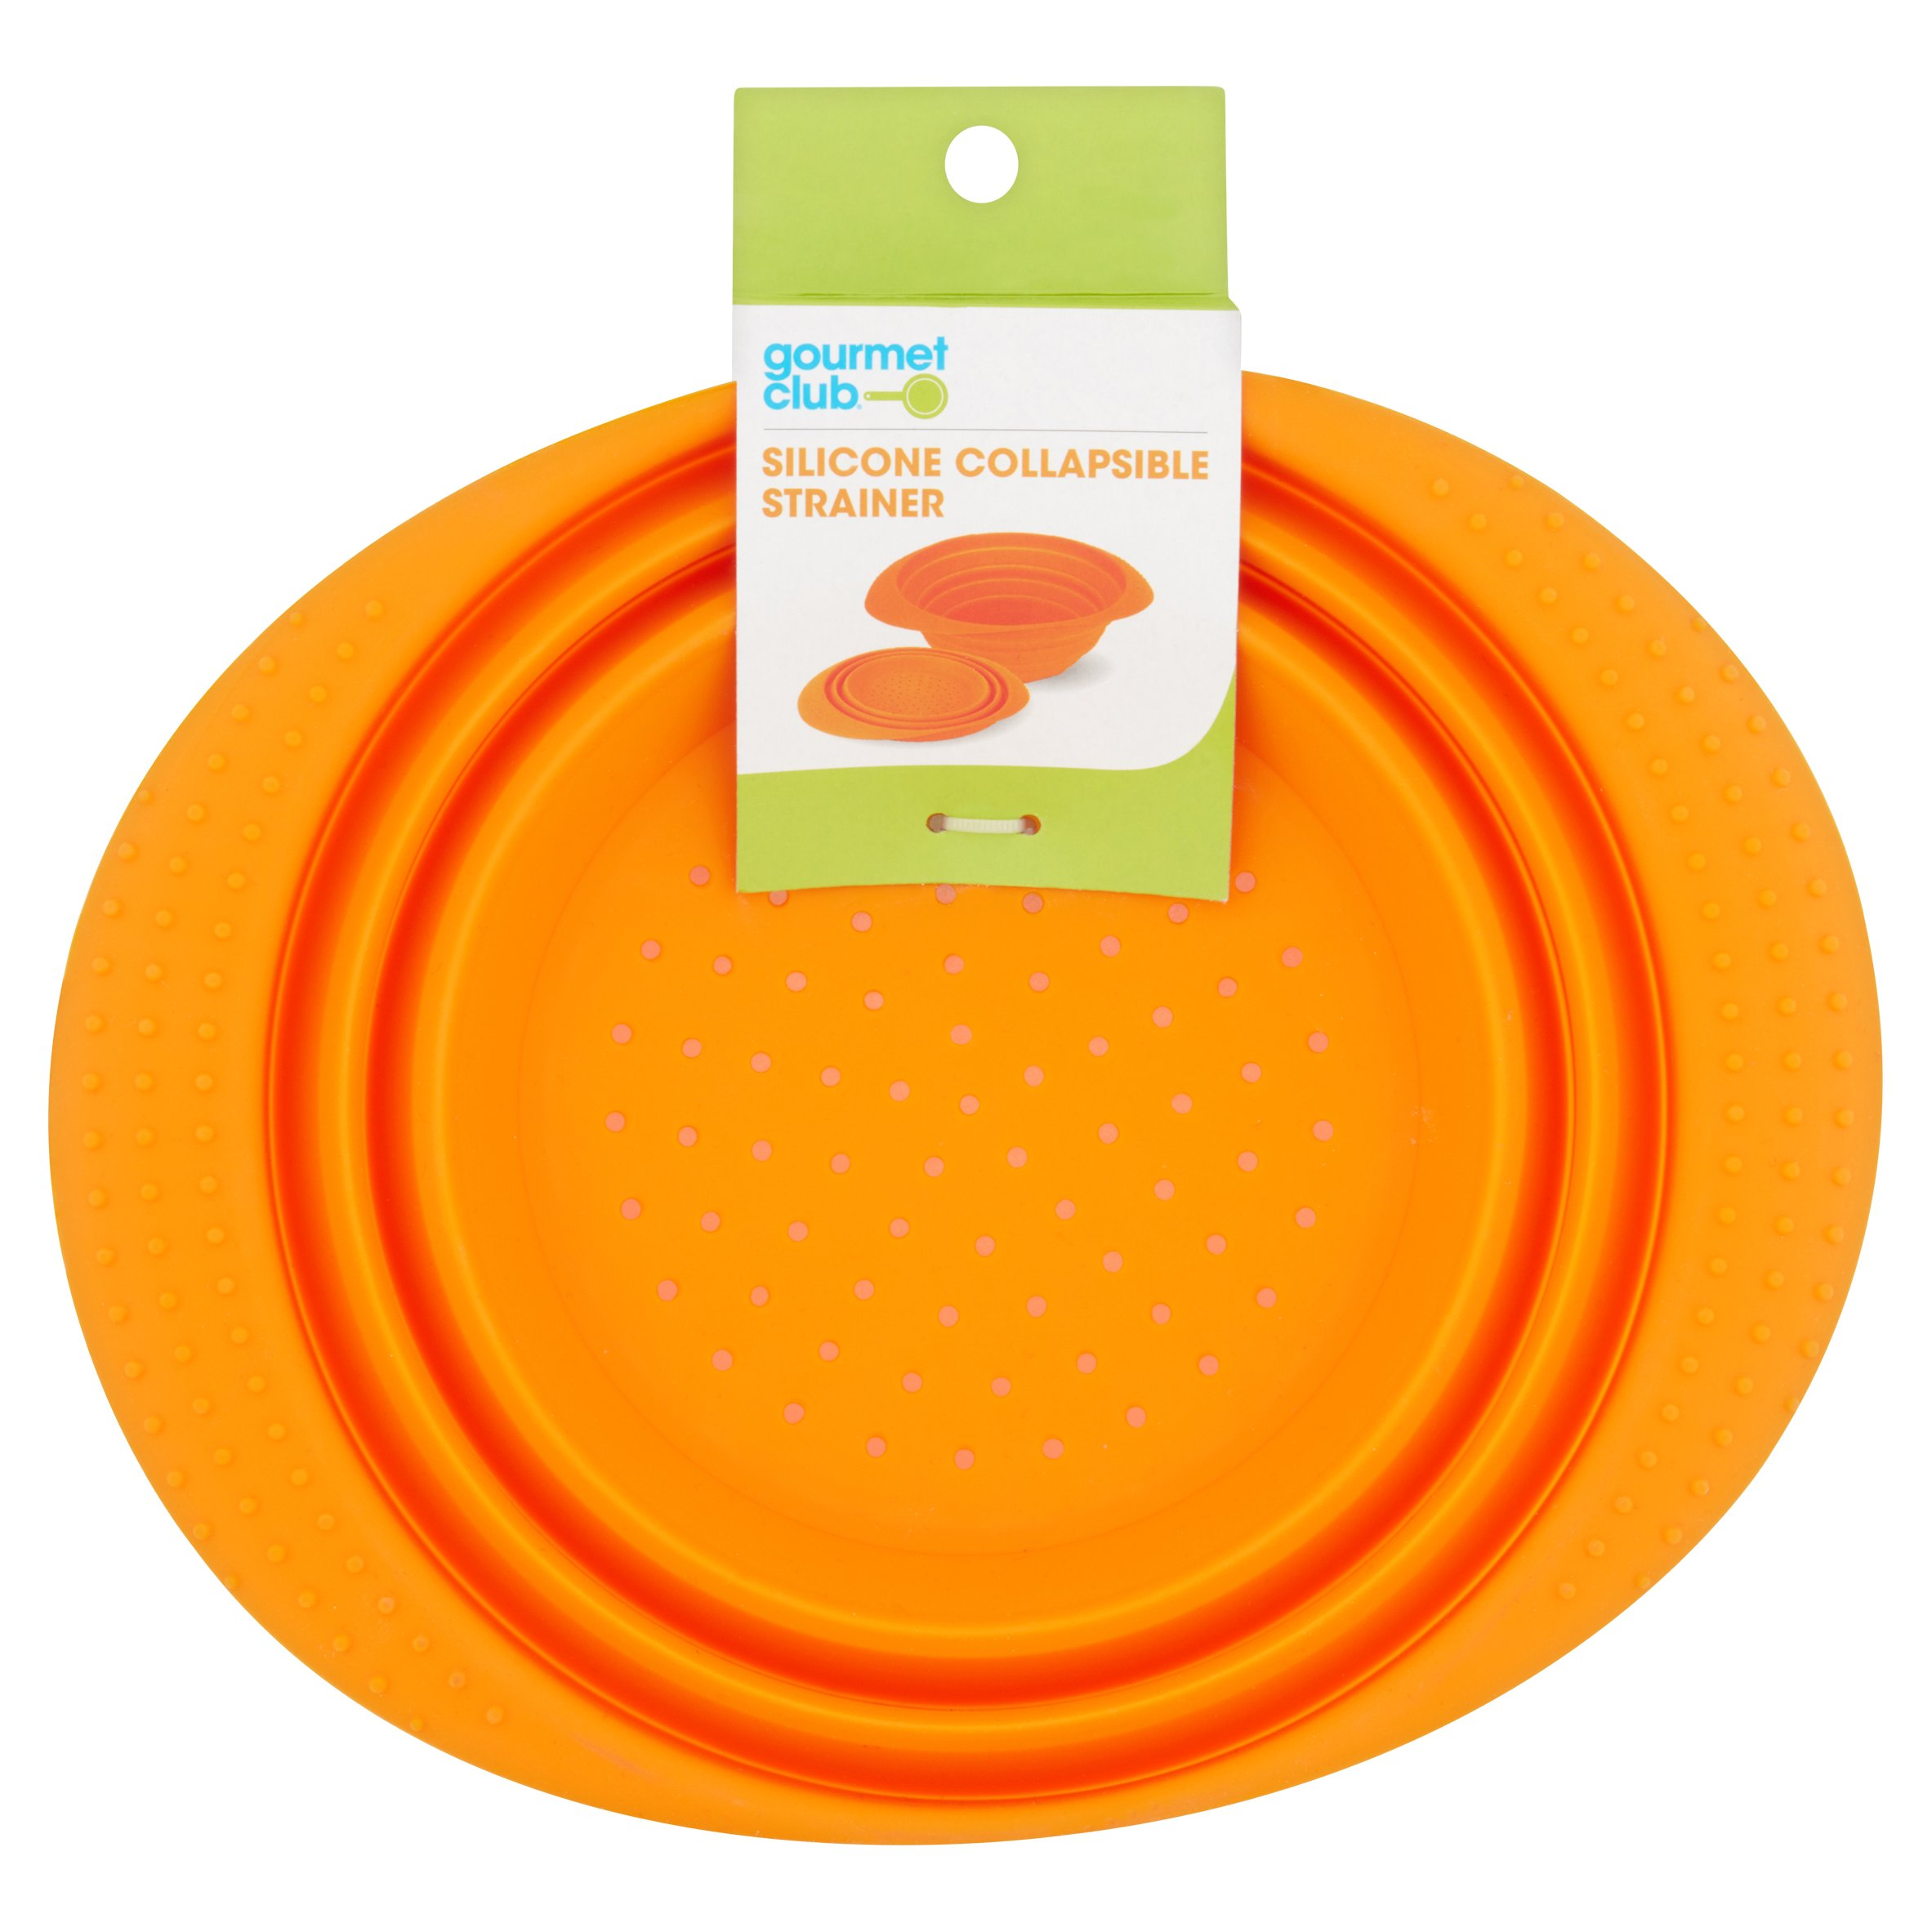 Click here to buy Gourmet Club Silicone Collapsible Strainer by Best Brands Consumer Products, Inc. c/o Best Brands Sales Company LLC.